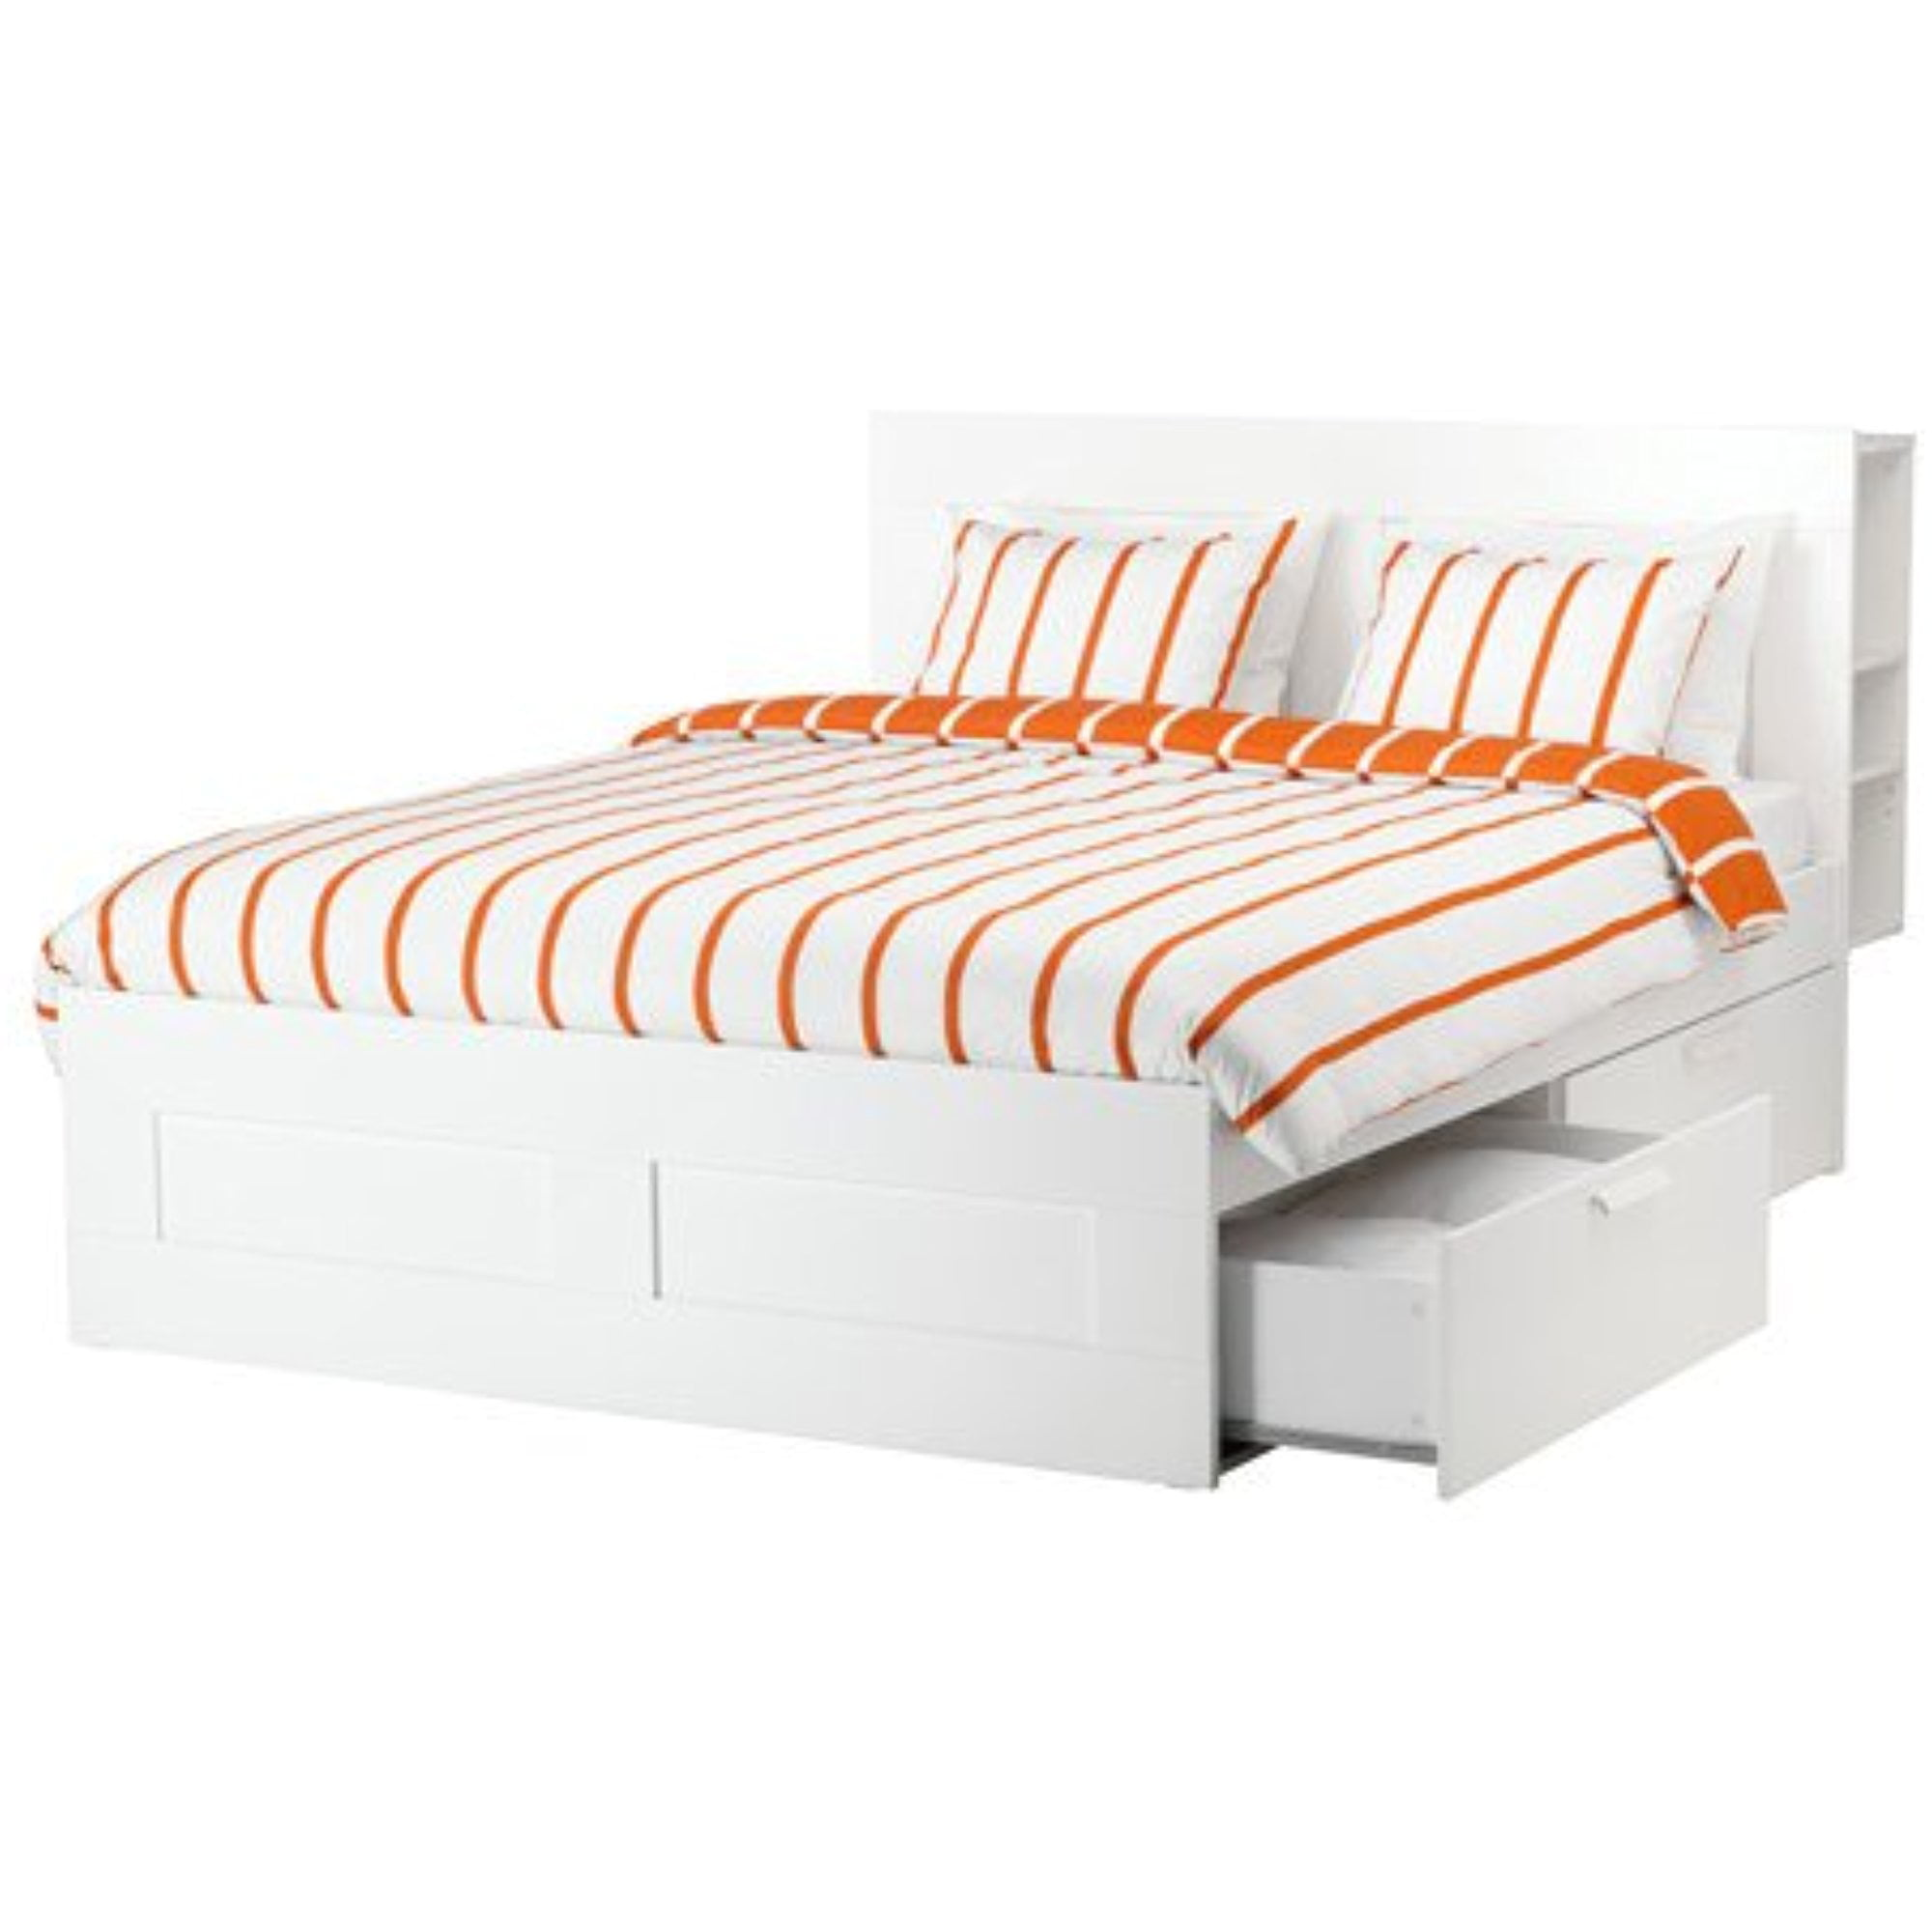 Ikea Full Size Bed Frame With Storage Headboard White Luroy 10386 82920 24 Walmart Com Walmart Com